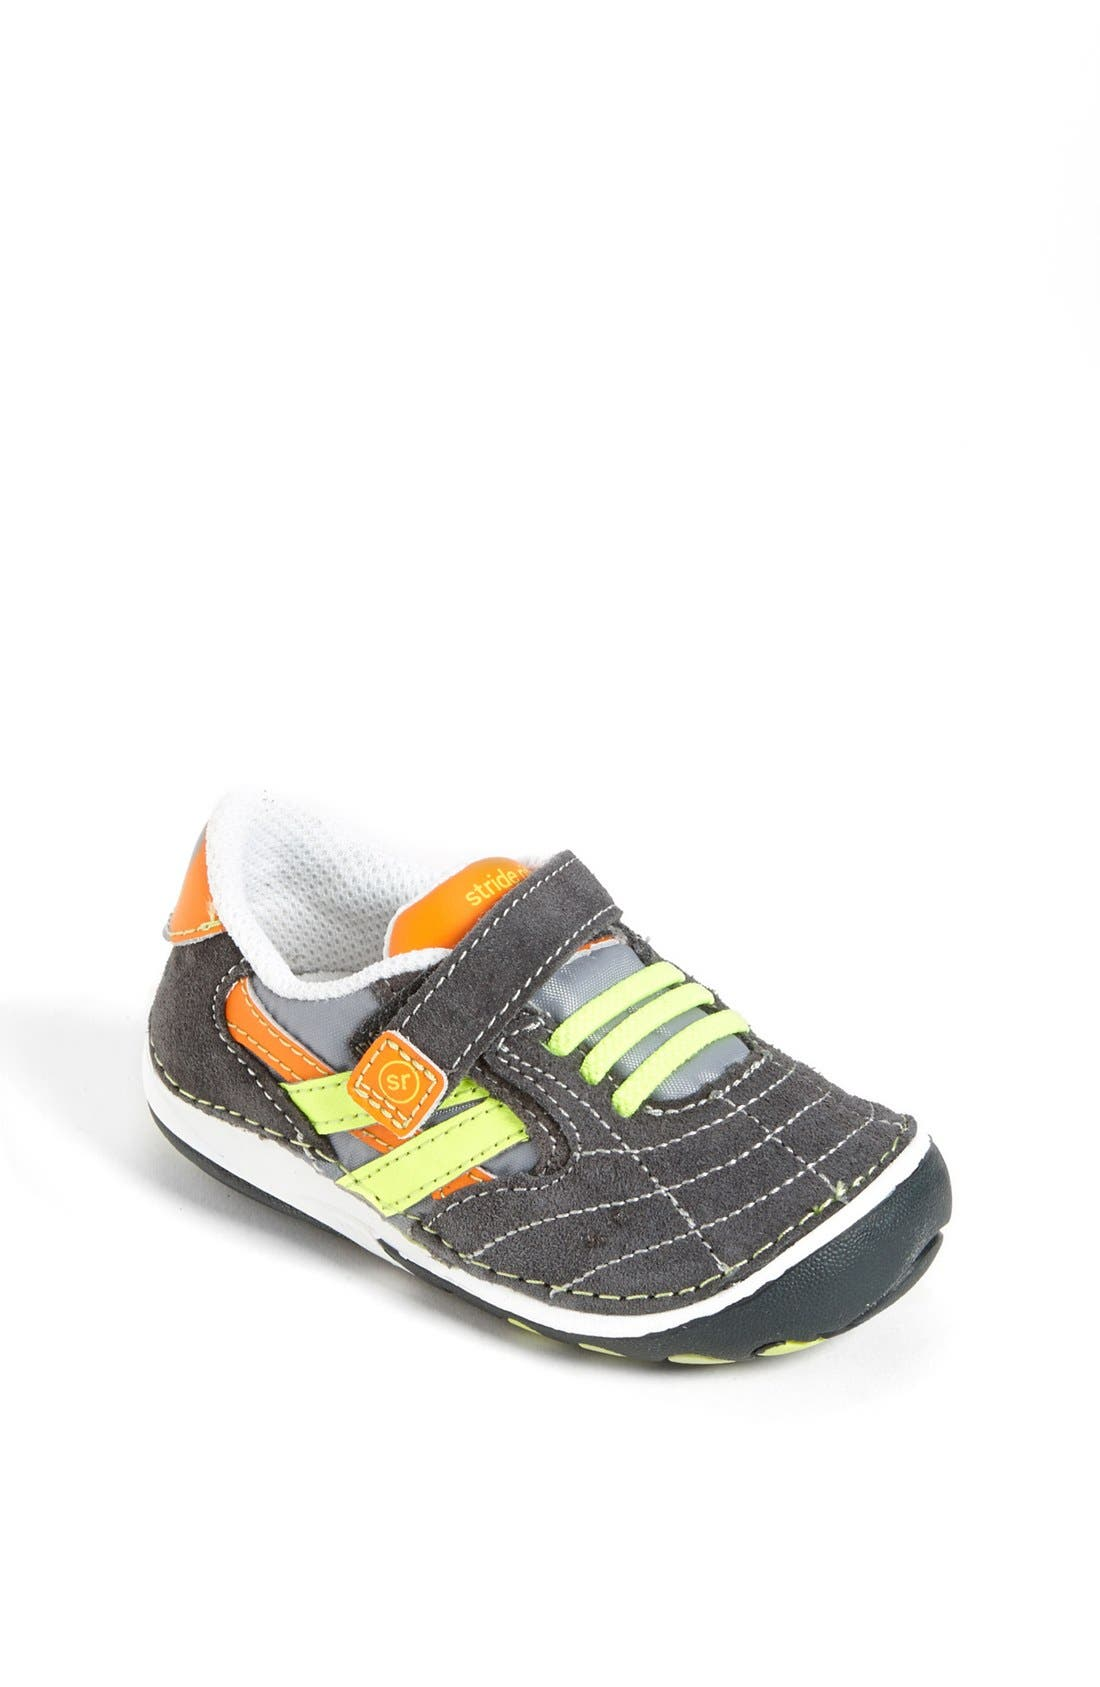 Main Image - Stride Rite 'Jason' Sneaker (Baby & Walker)